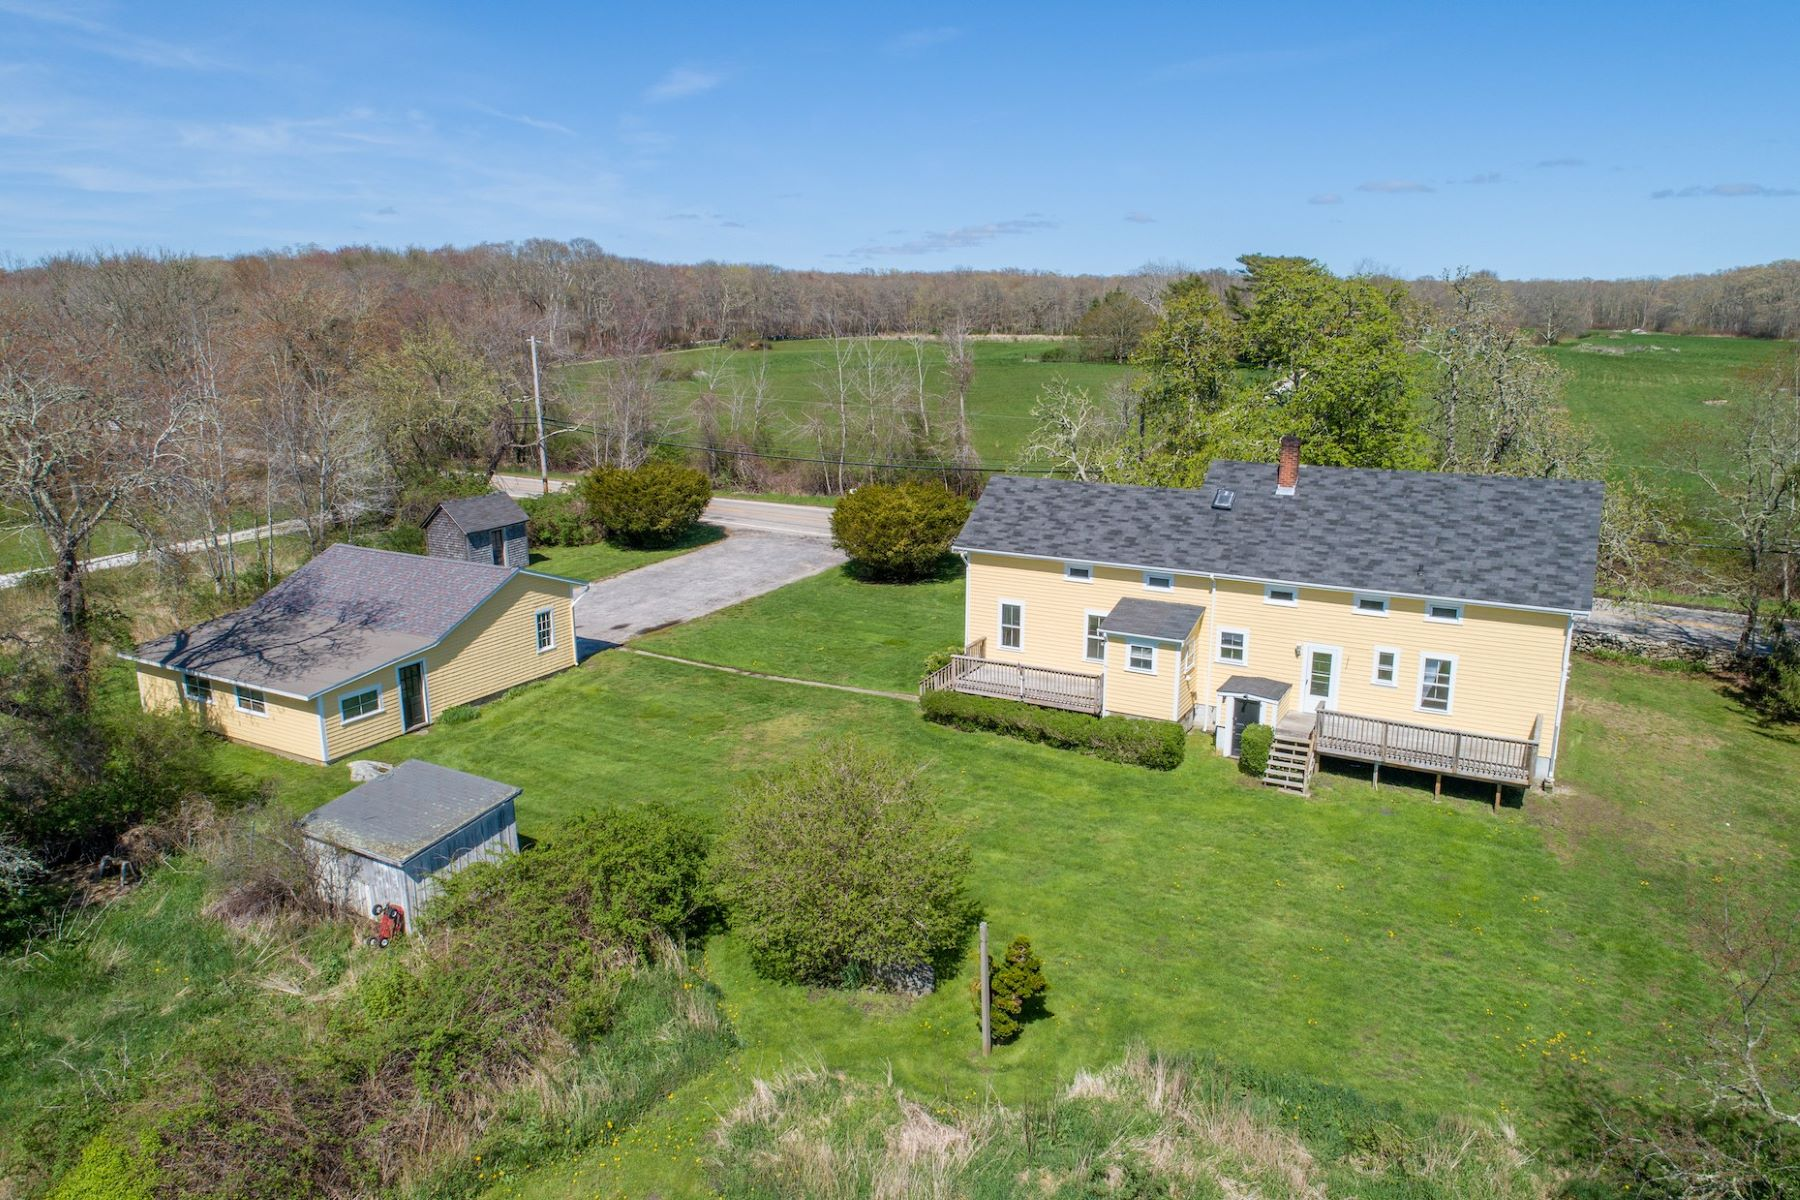 Multi-Family Homes for Sale at 55 East Main Road, Little Compton, RI Little Compton, Rhode Island 02837 United States